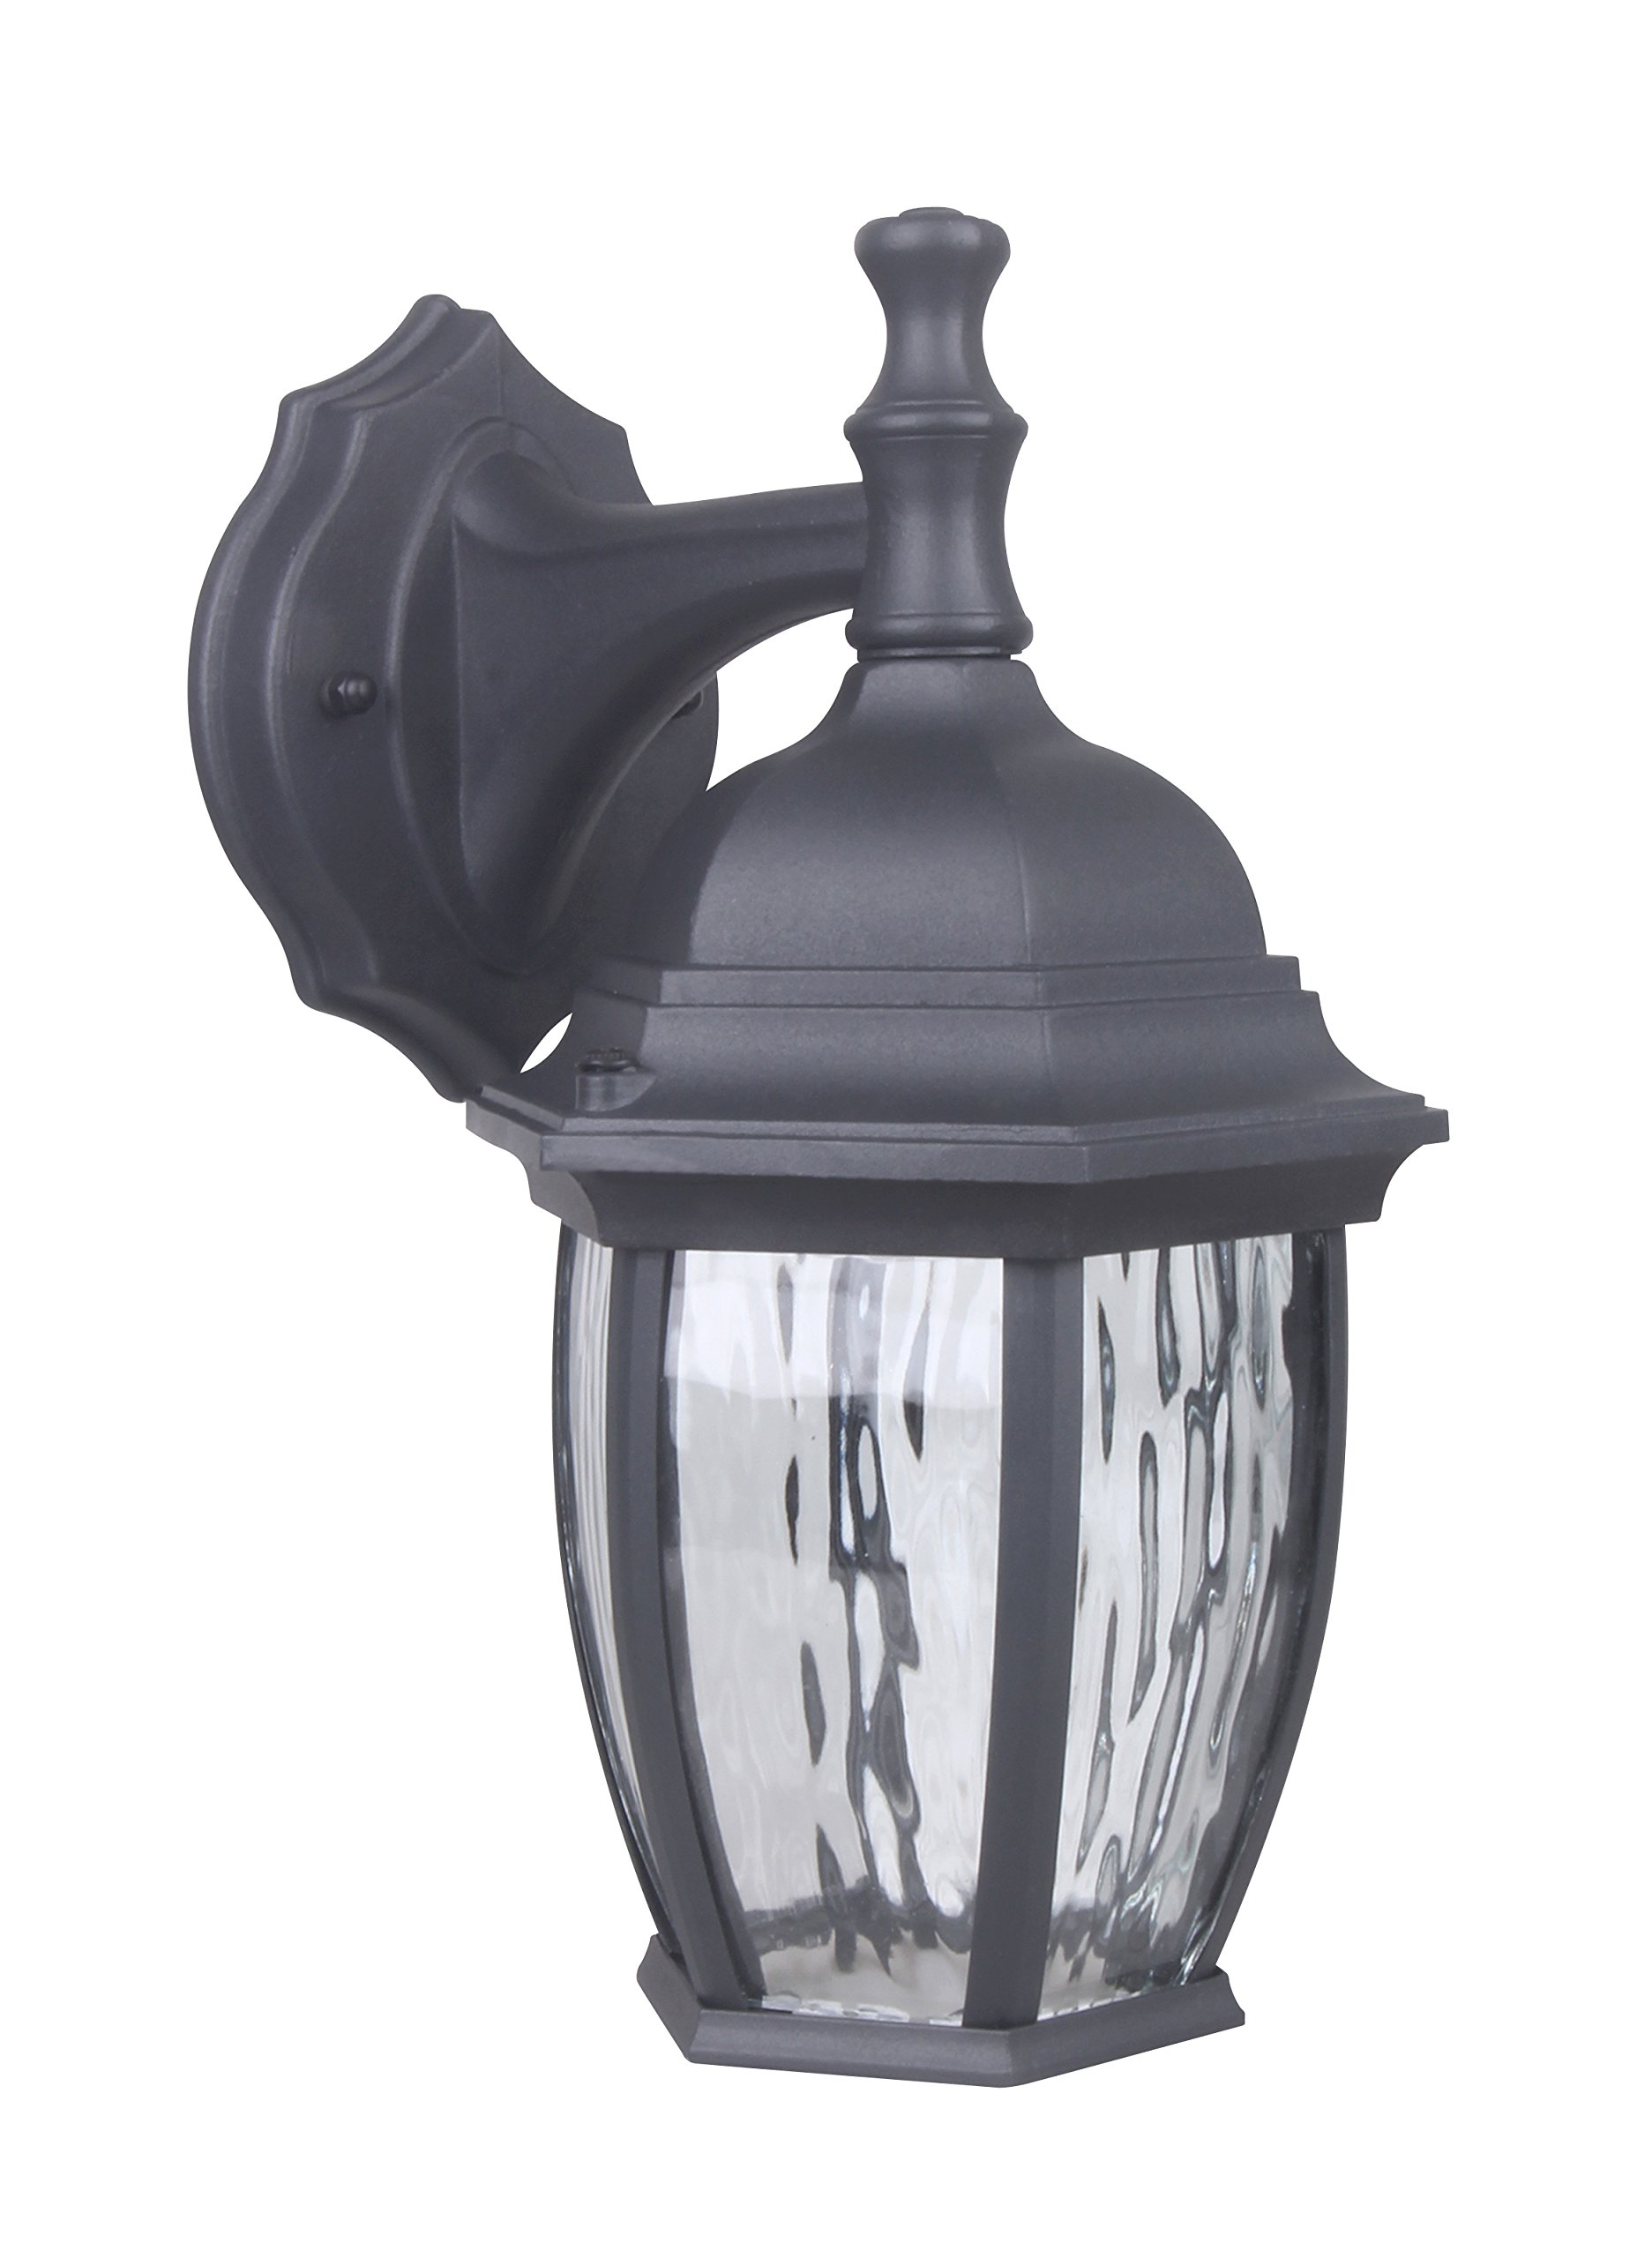 CORAMDEO Outdoor LED Wall Lantern, Wall Sconce 6.4W Replace 60W Traditional Lighting Fixtures, 450 Lumen, Water-Proof, Aluminum Housing Plus Glass, ETL and Energy Star Rated